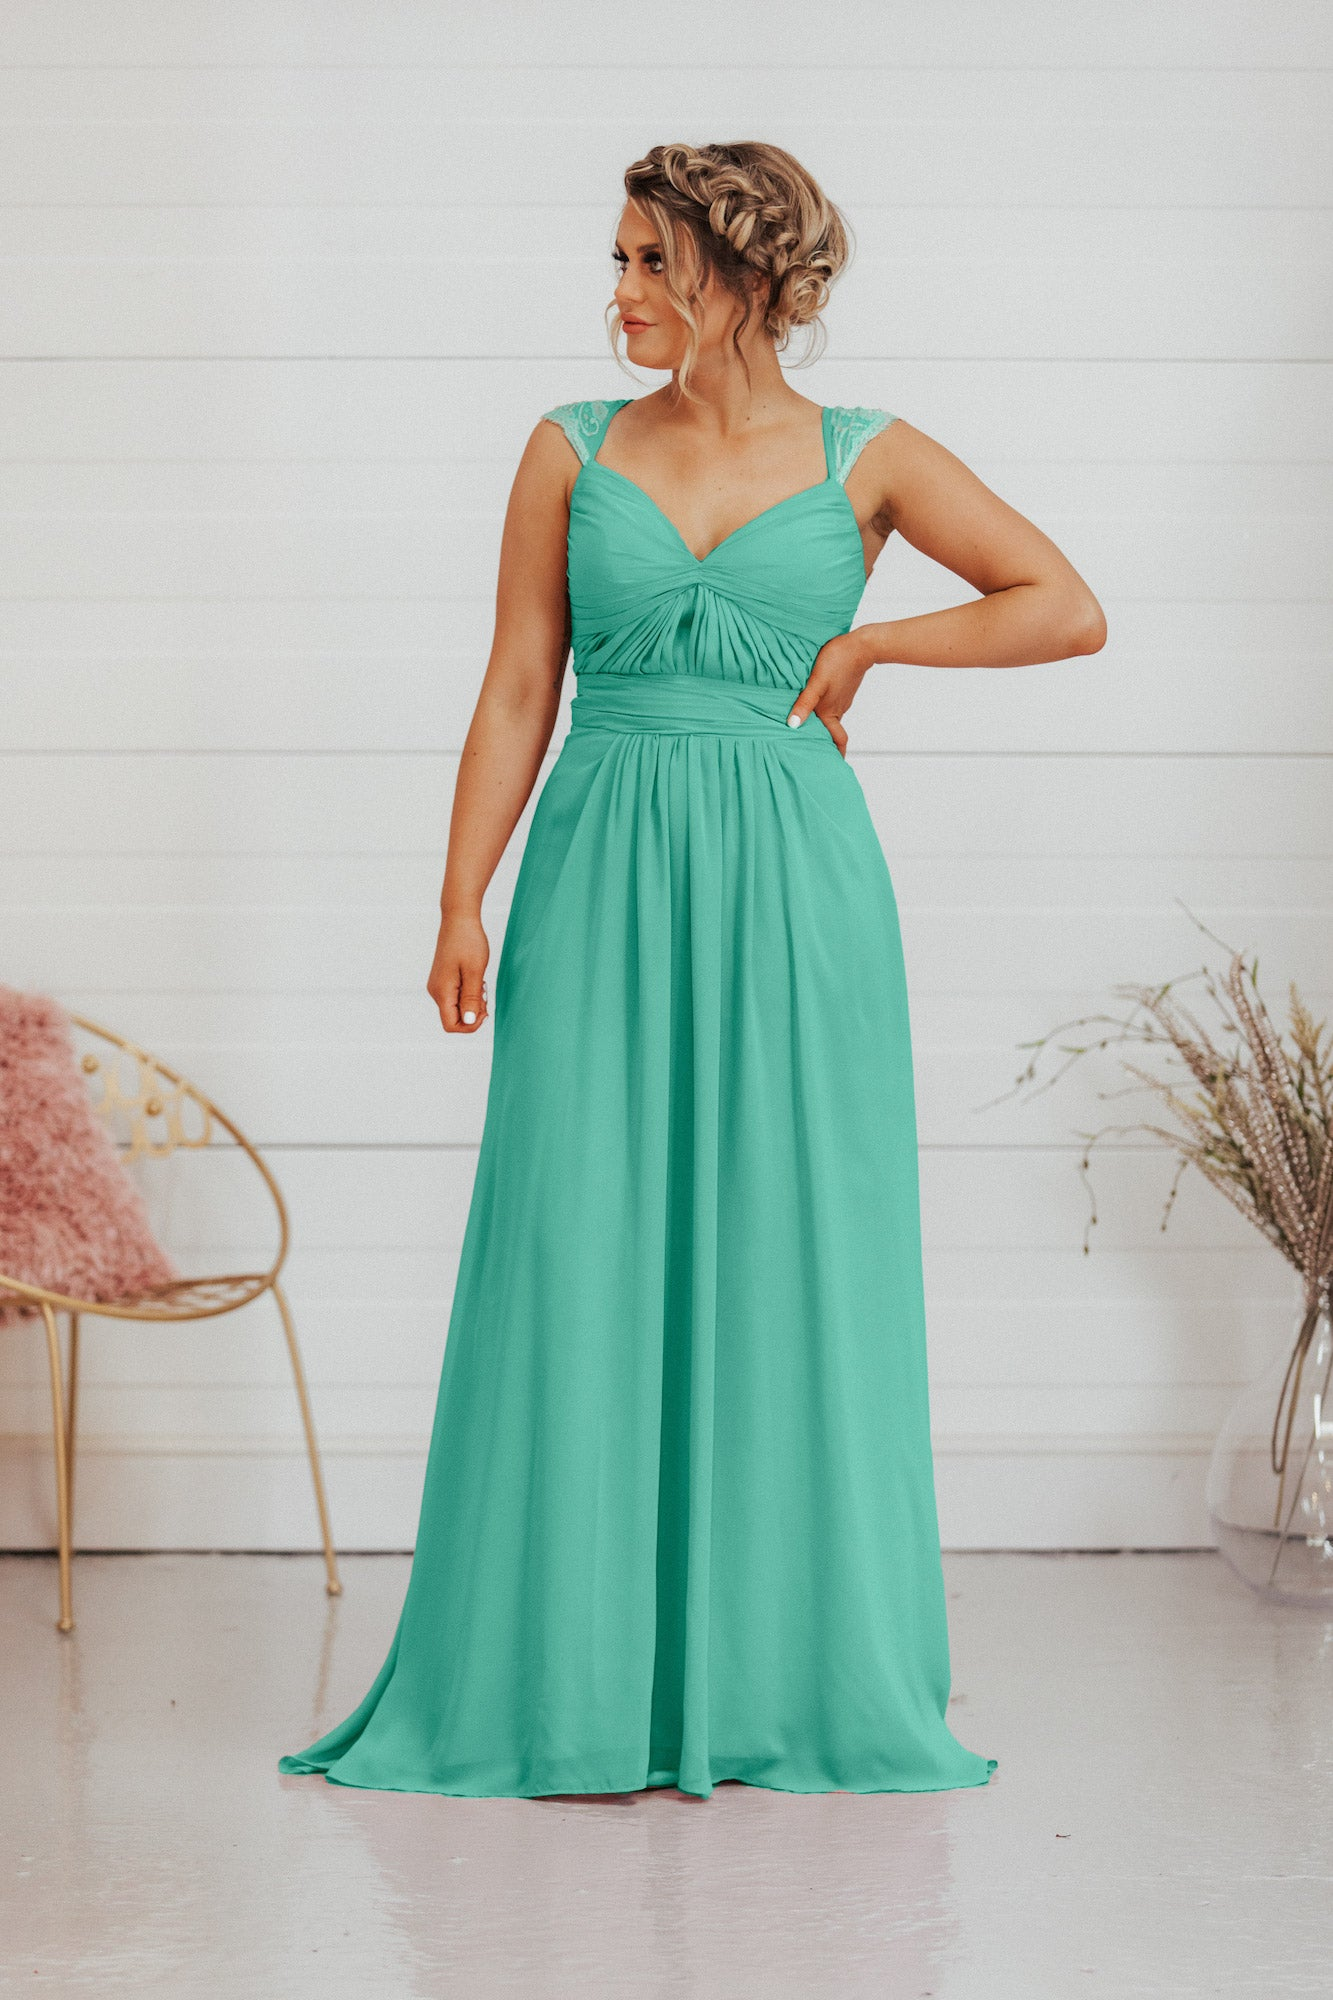 Elaina Dress | Chiffon V Neck A Line Bridesmaid Dress - That Special Day Bridal Warehouse